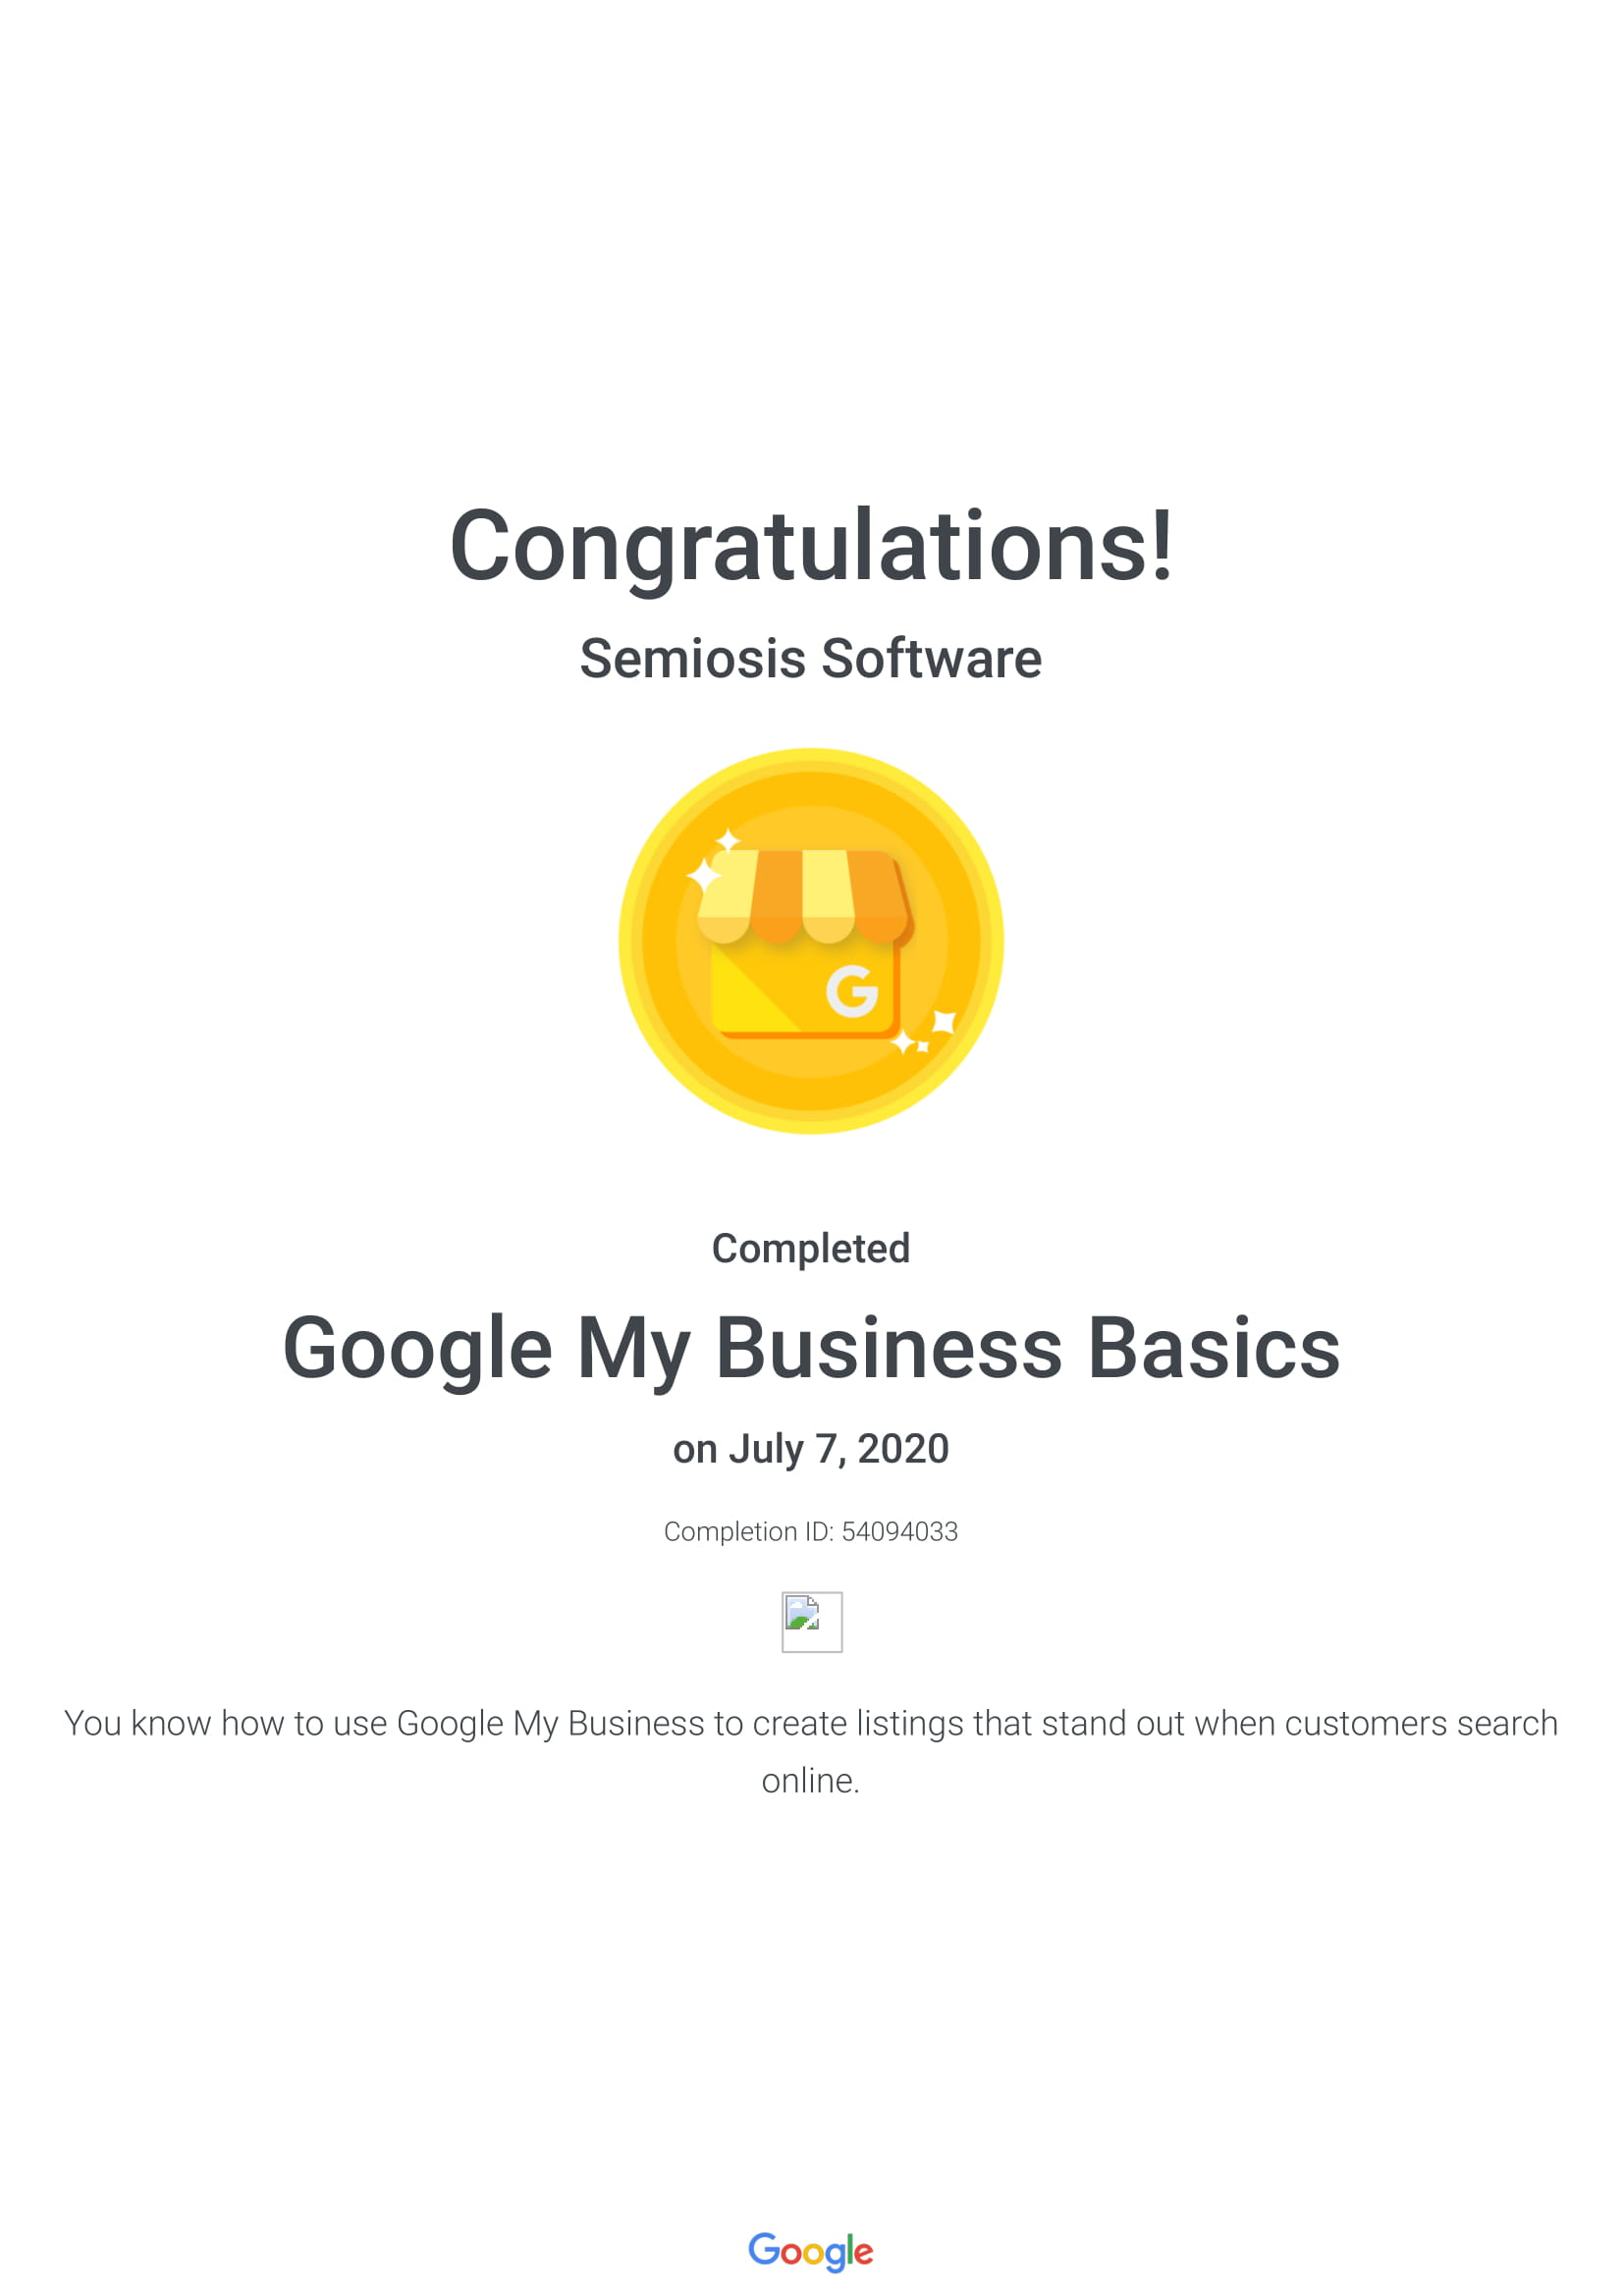 Google My Business Basics